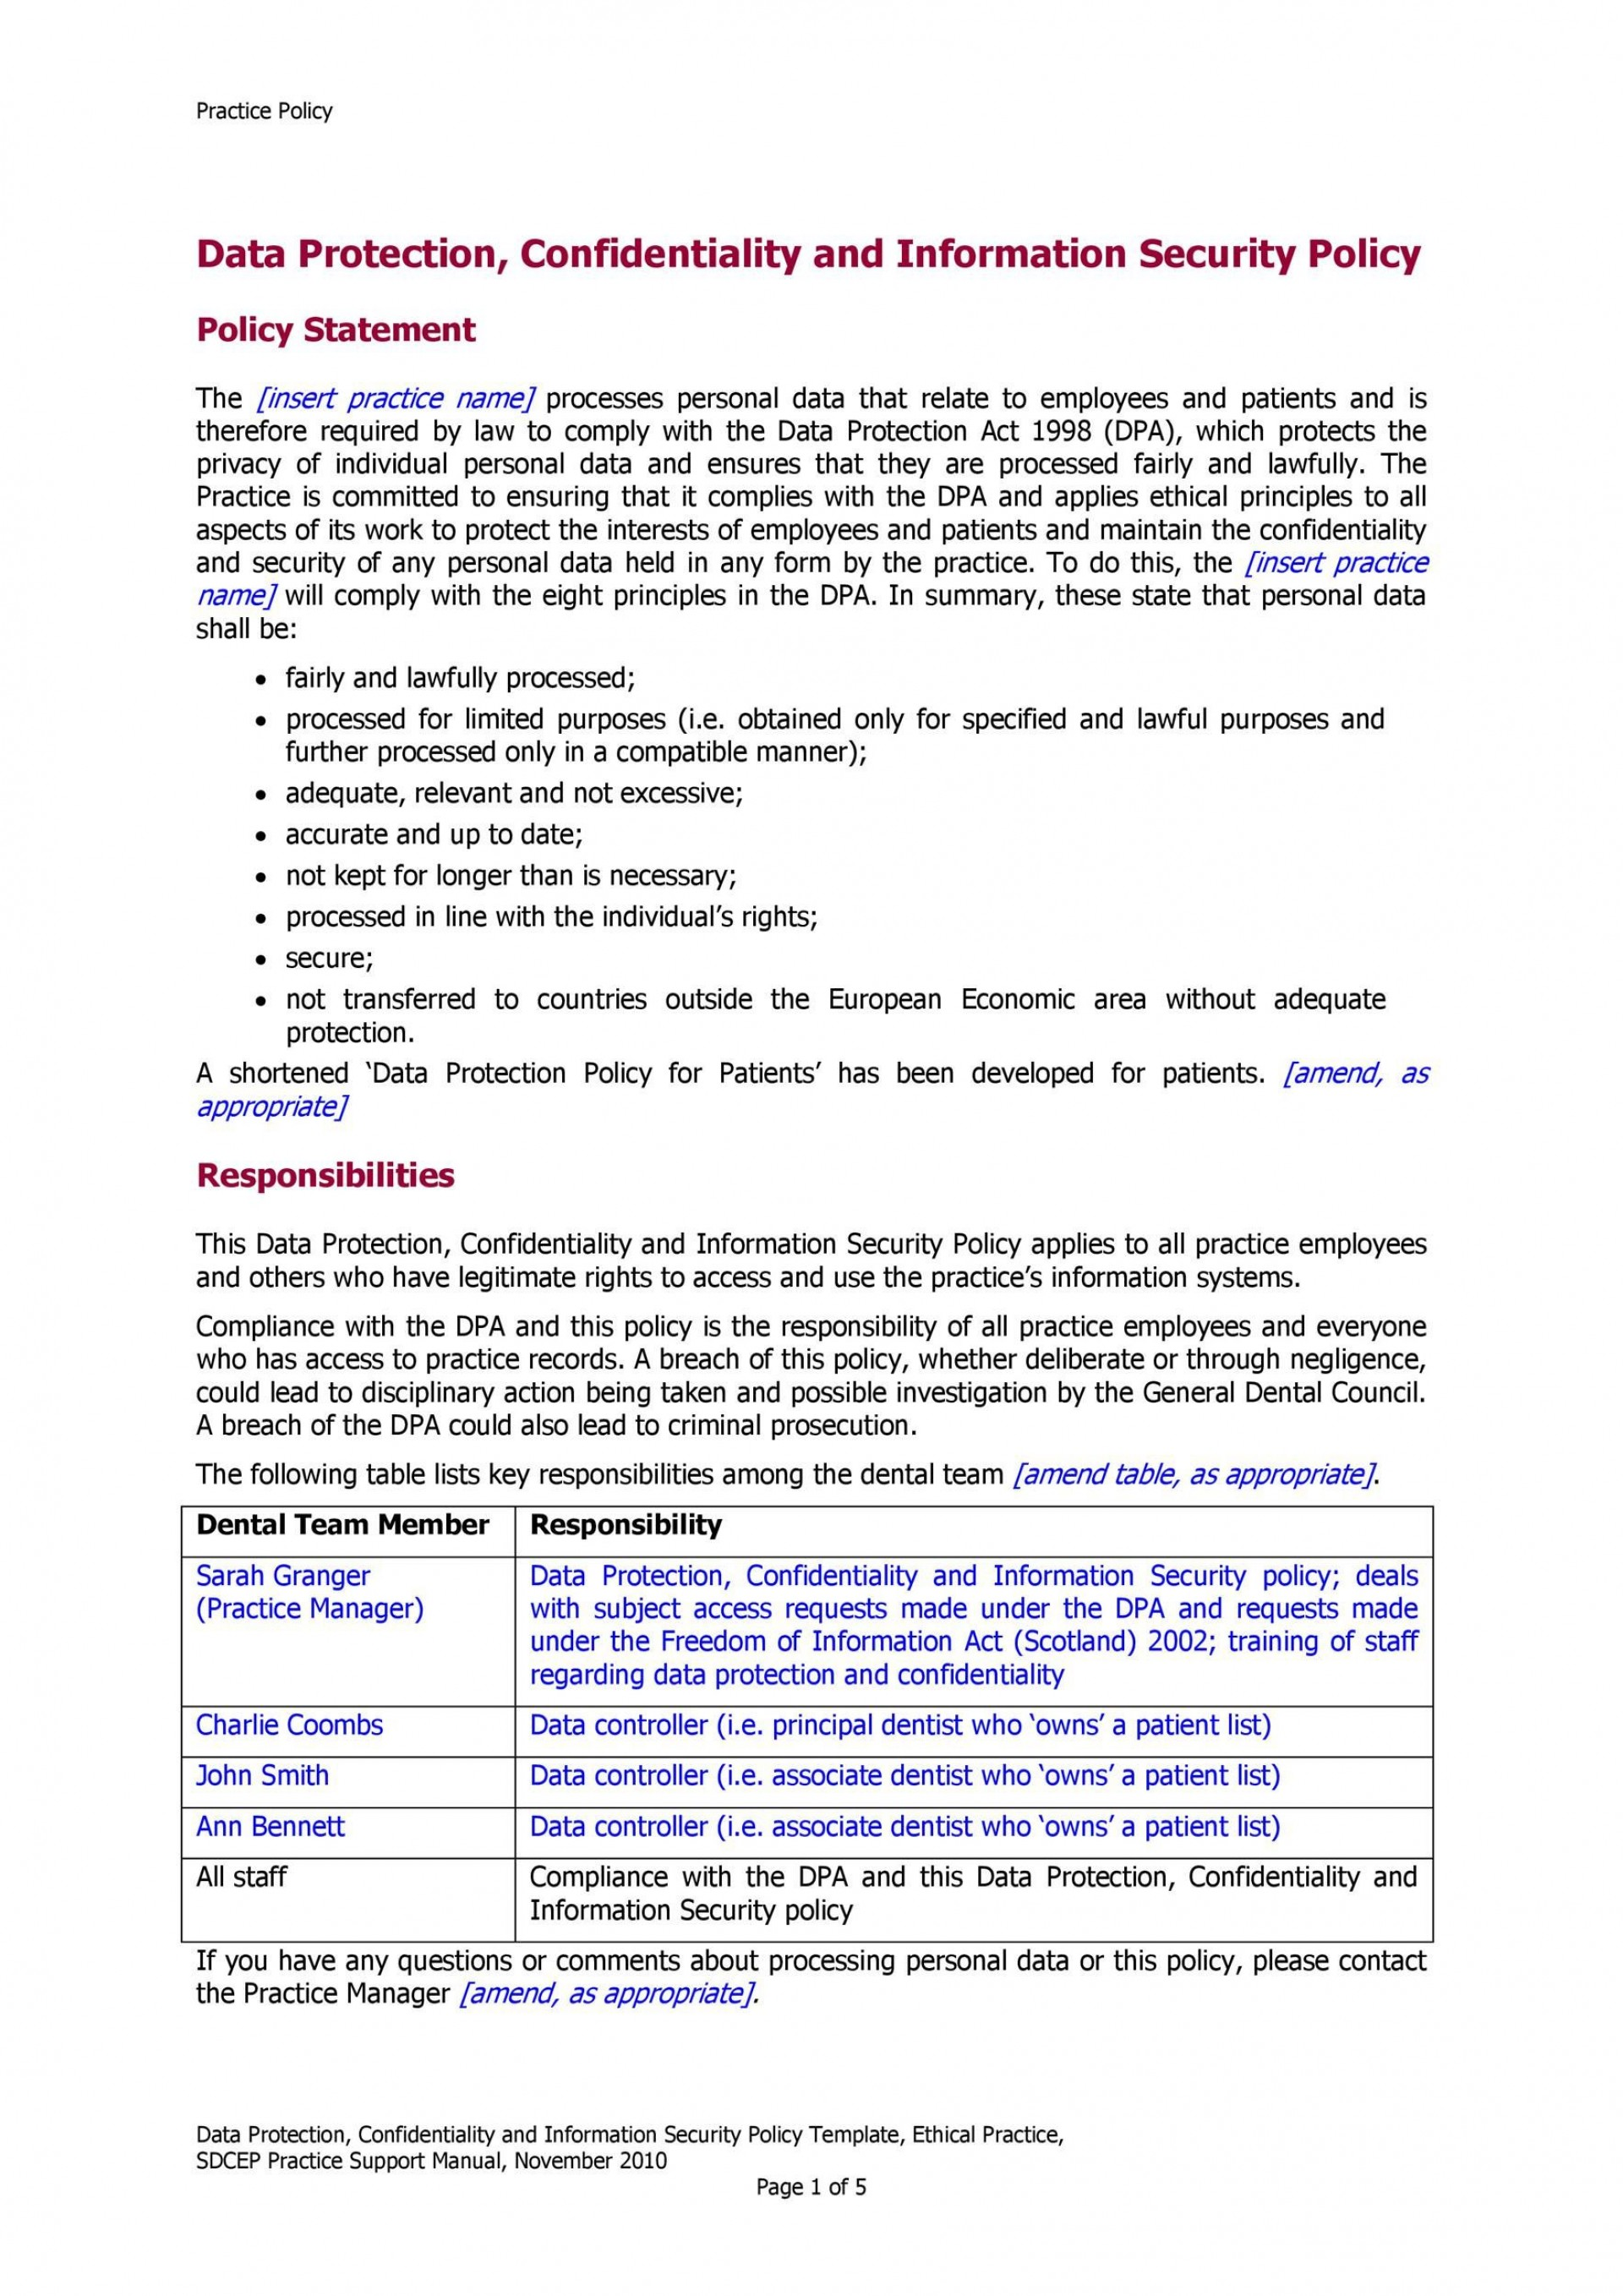 003 Astounding Data Security Policy Template High Resolution  Example Uk Center Gdpr1920